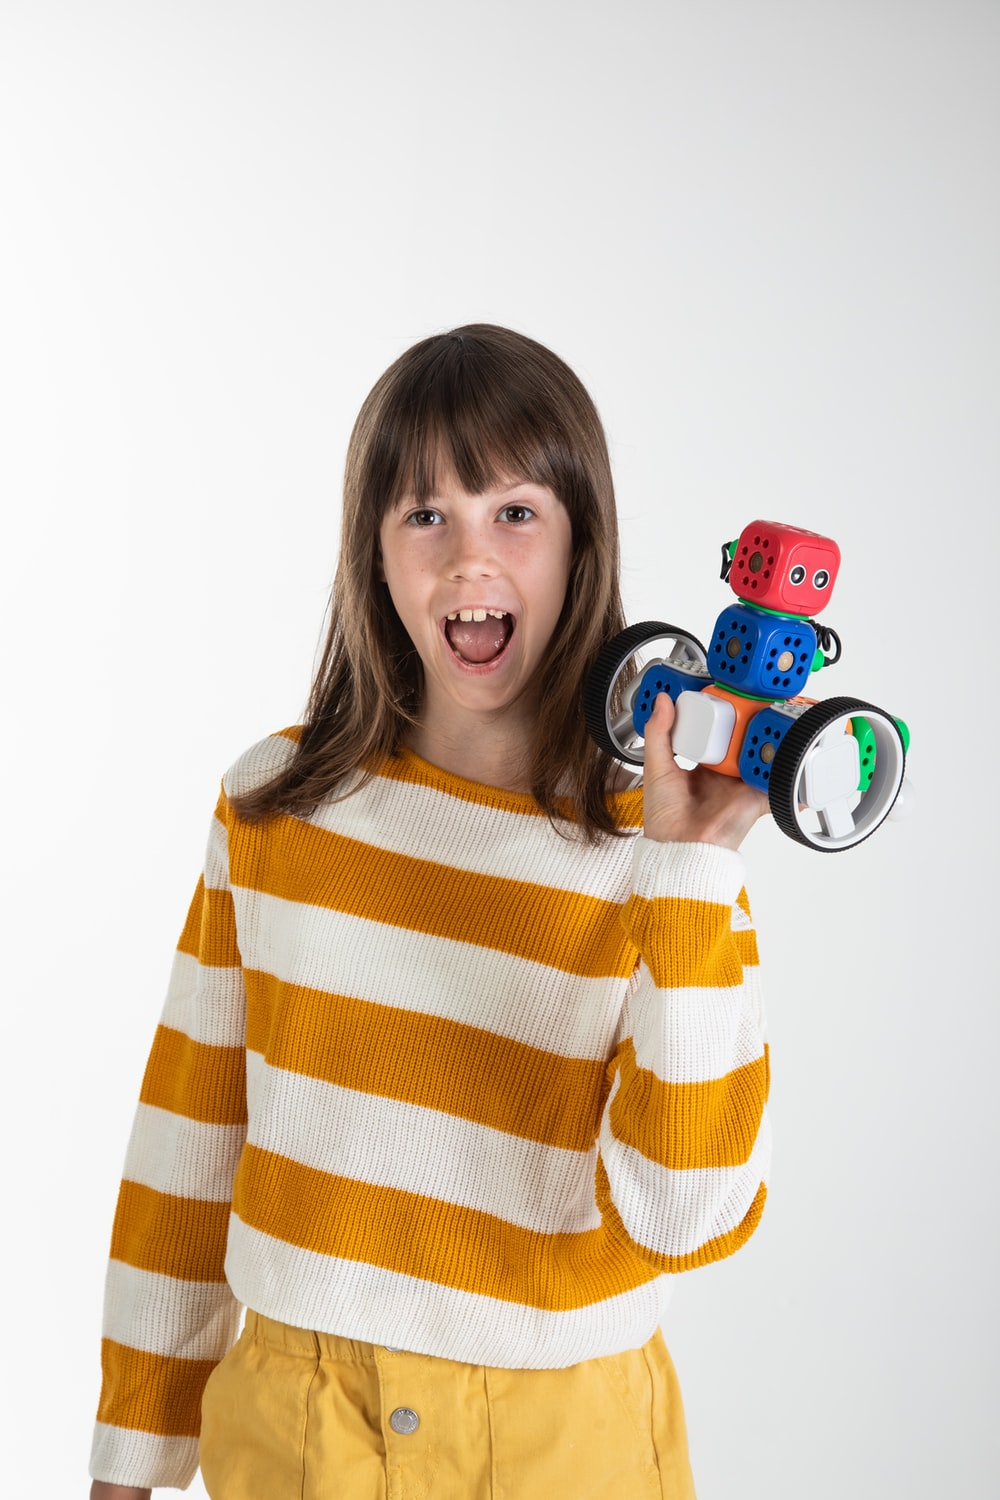 woman in yellow and white striped long sleeve shirt holding red and black toy car